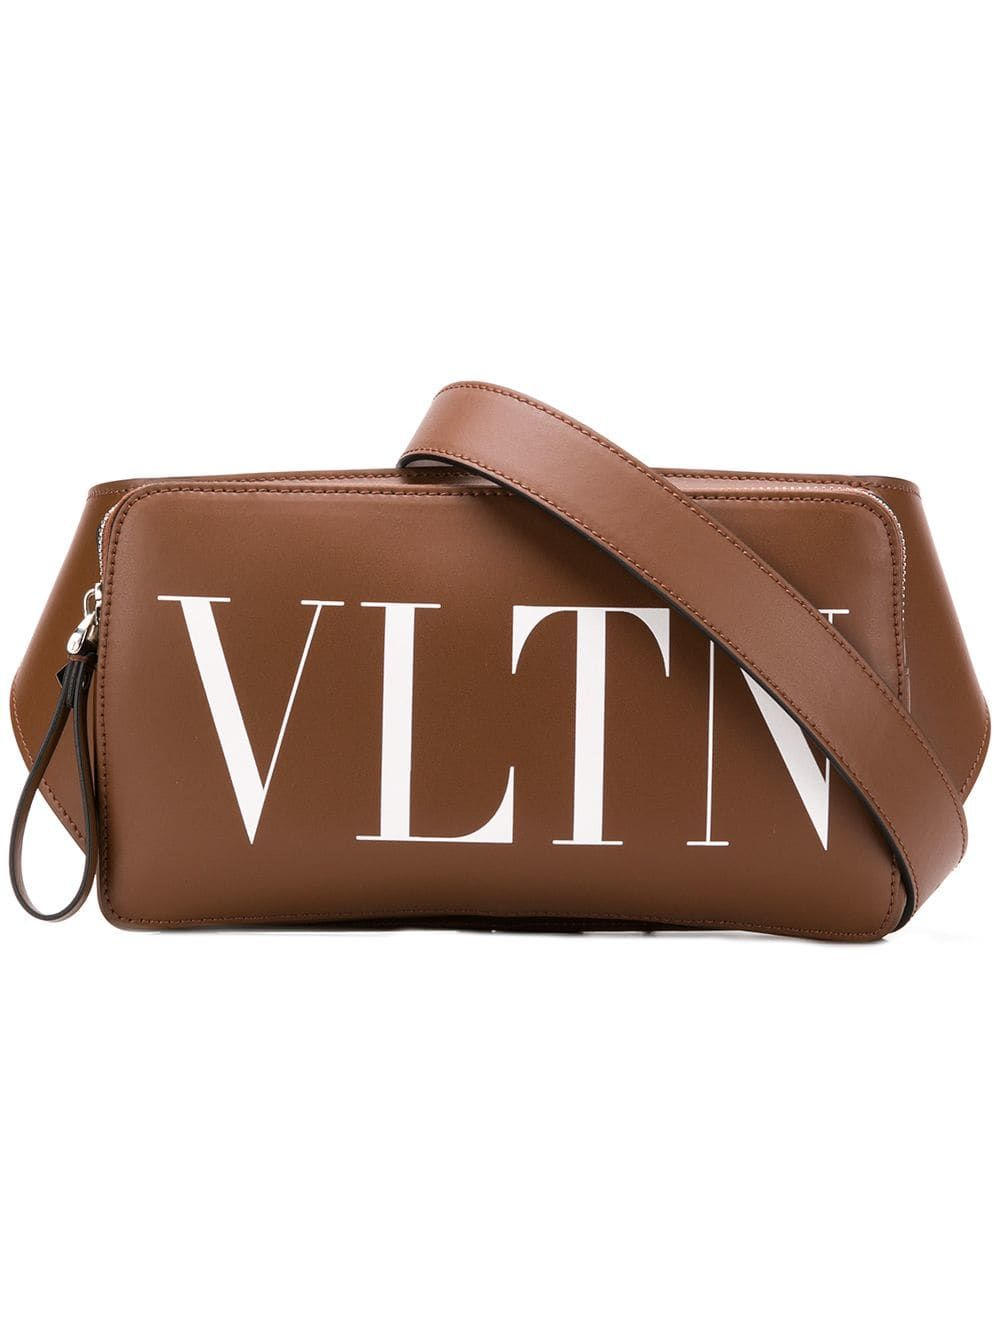 60acc6c25 VALENTINO VALENTINO VALENTINO GARAVANI VLTN BELT BAG - BROWN. #valentino  #bags #leather #belt bags